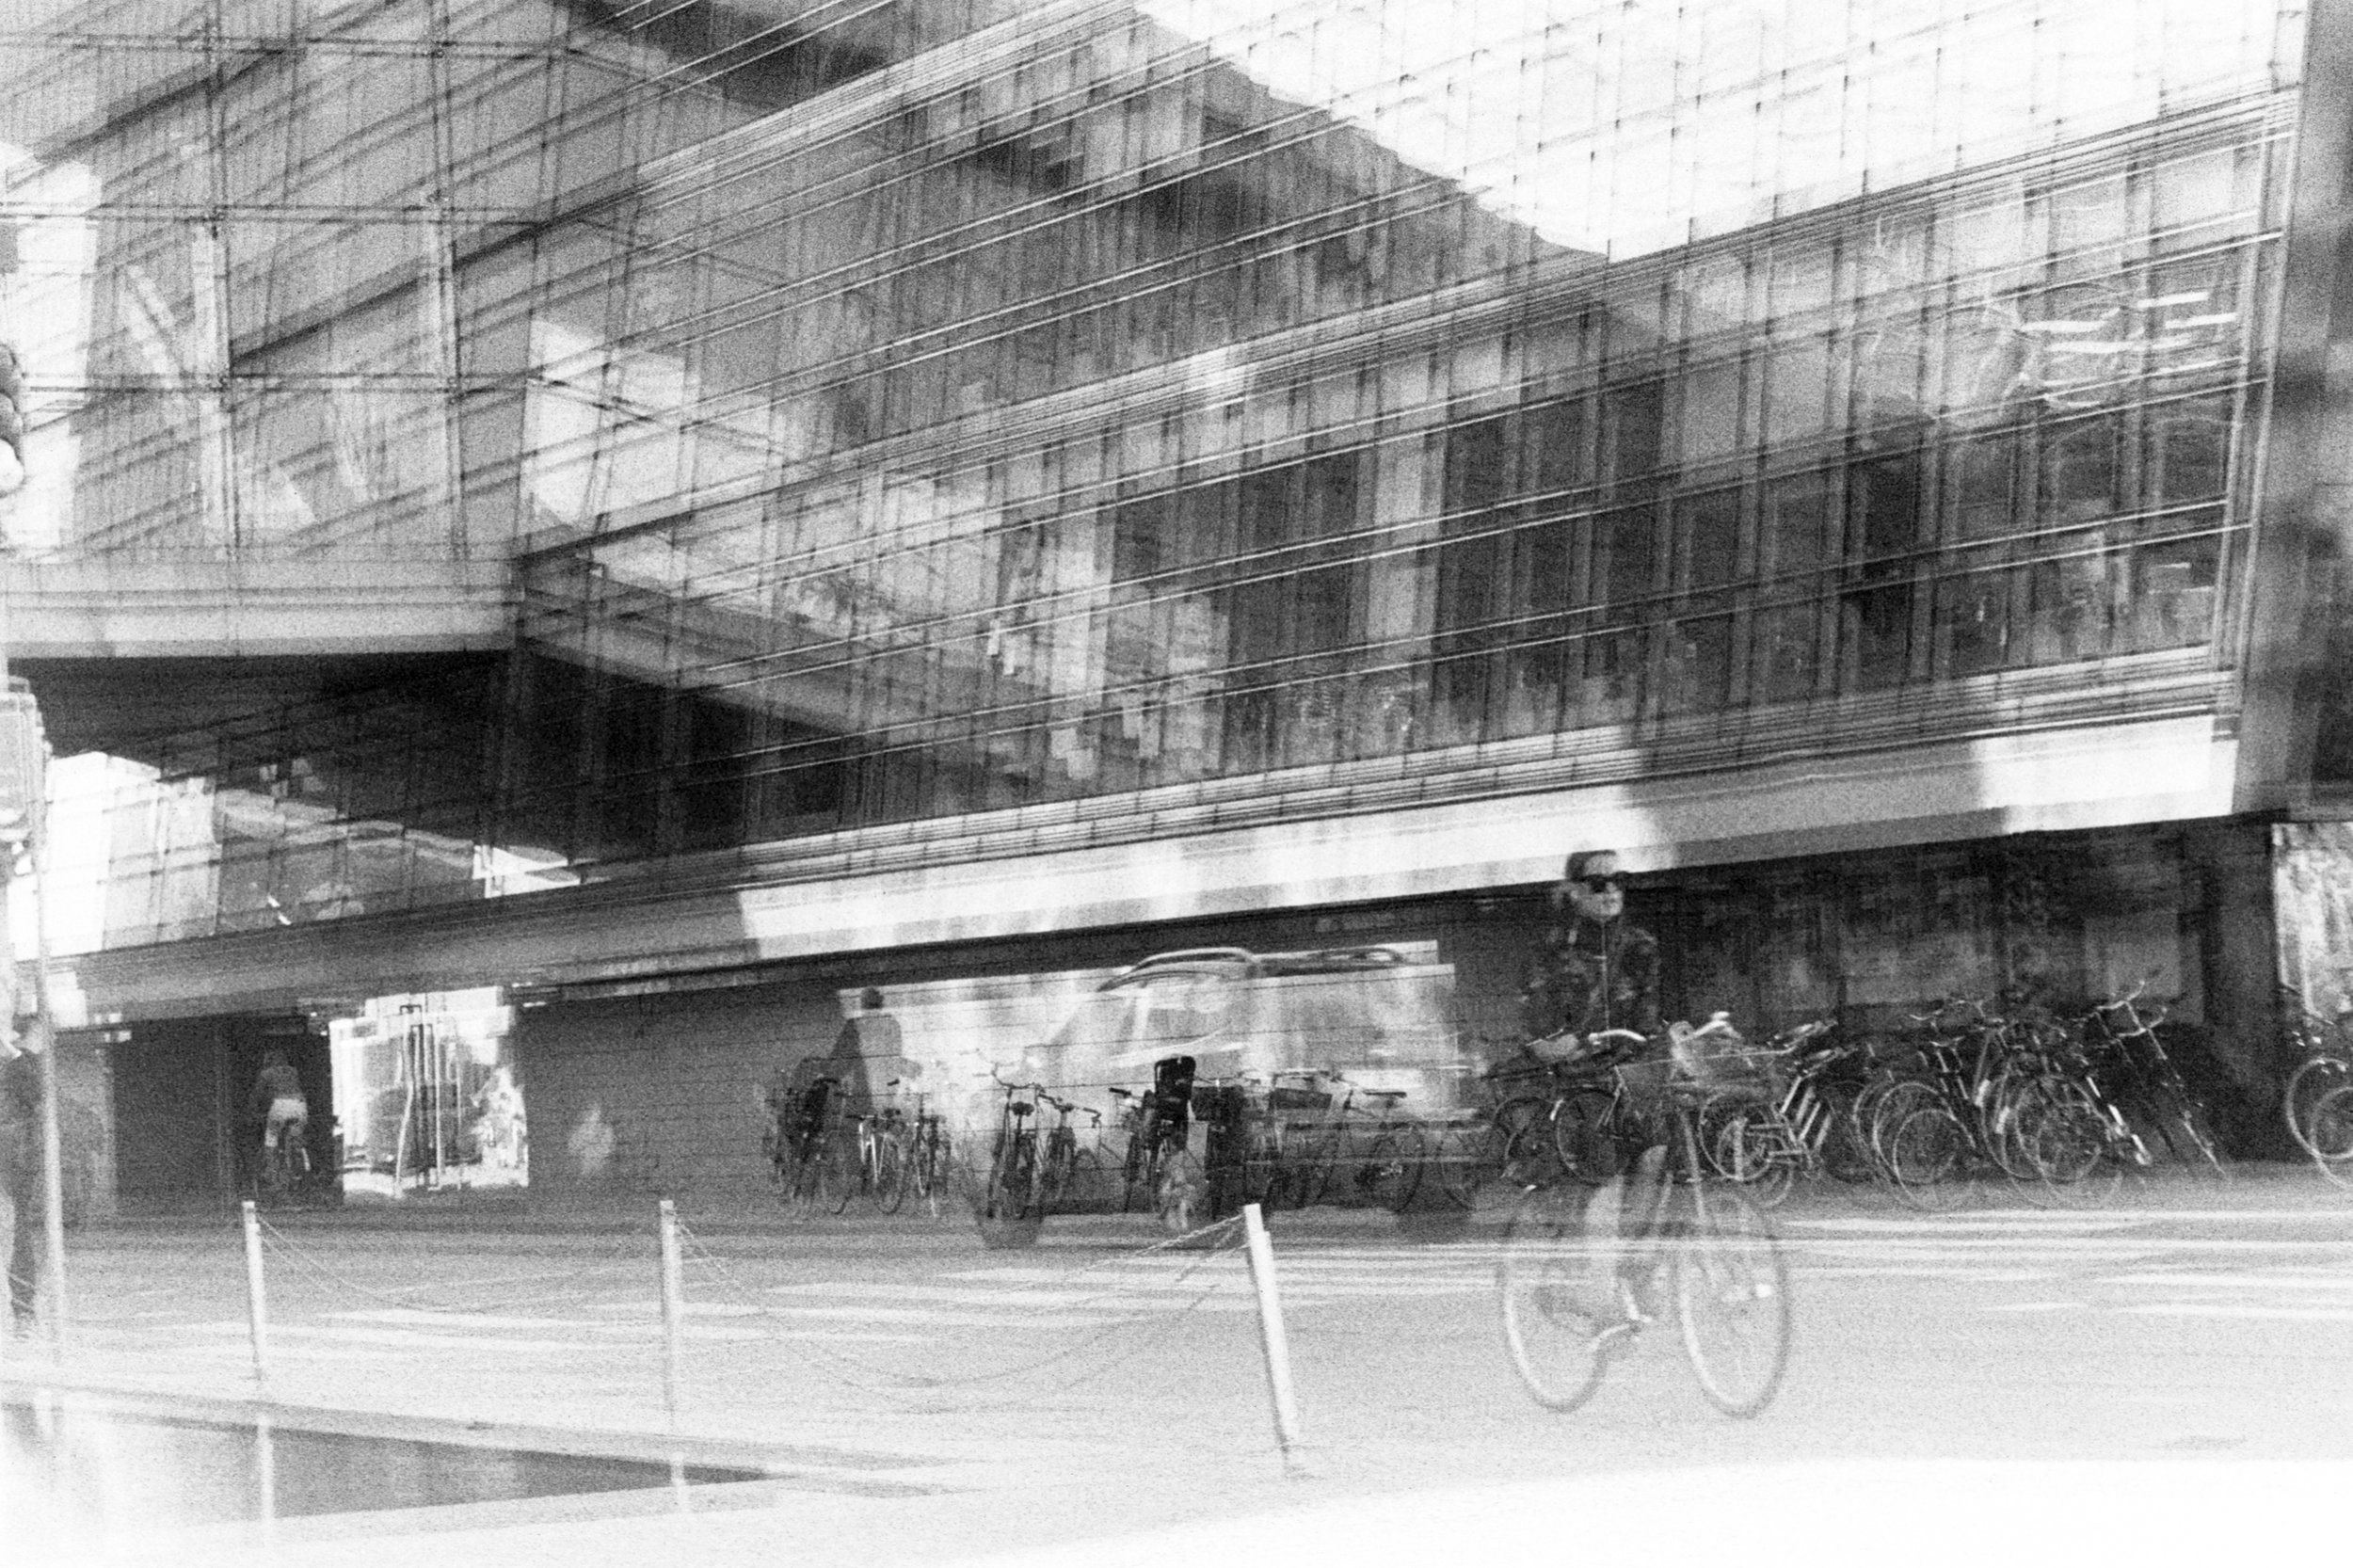 Copenhagen, Denmark.  Double exposure. Waiting for the right moments. Taken in the middle of the day sheltered by the subject building. Creating some pattern with a double exposure slightly off with the 2nd frame.